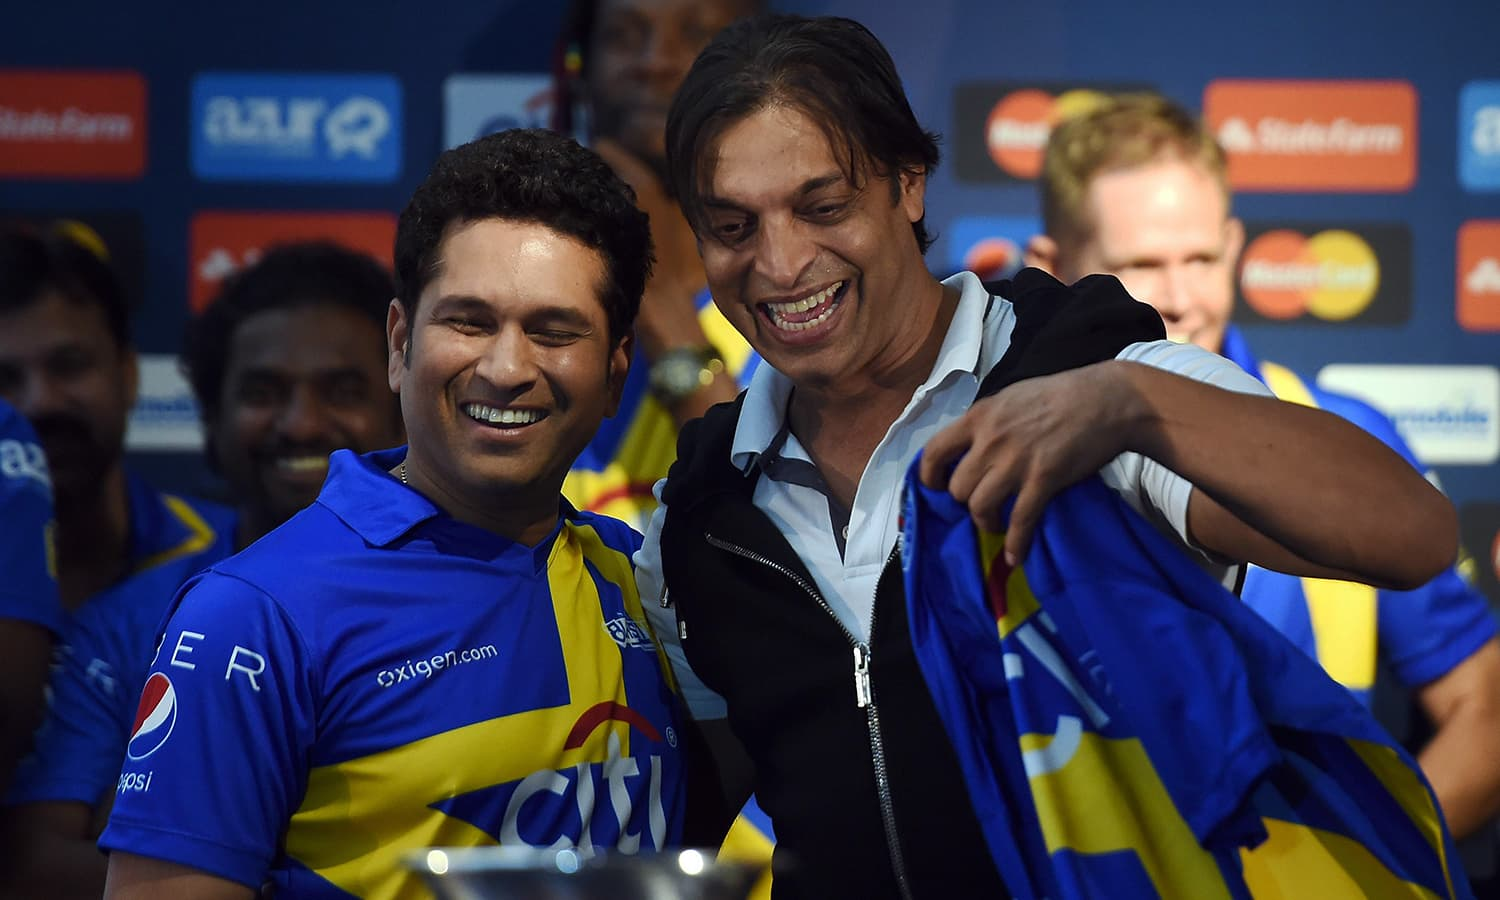 "Former Pakistan's fast bowler Shoaib Akhtar (R) hugs retired Indian cricketer Sachin Tendulkar after he was selected for Tendulkar's team during a press conference in New York on November 5, 2015. Tendulkar and Warne will lead a lineup of renowned cricket players from around the world in the inaugural ""Cricket All-Stars,"" a three-game series to be played in Major League Baseball stadiums in New York , Houston and Los Angeles, to promote cricket the US. AFP PHOTO/JEWEL SAMAD"